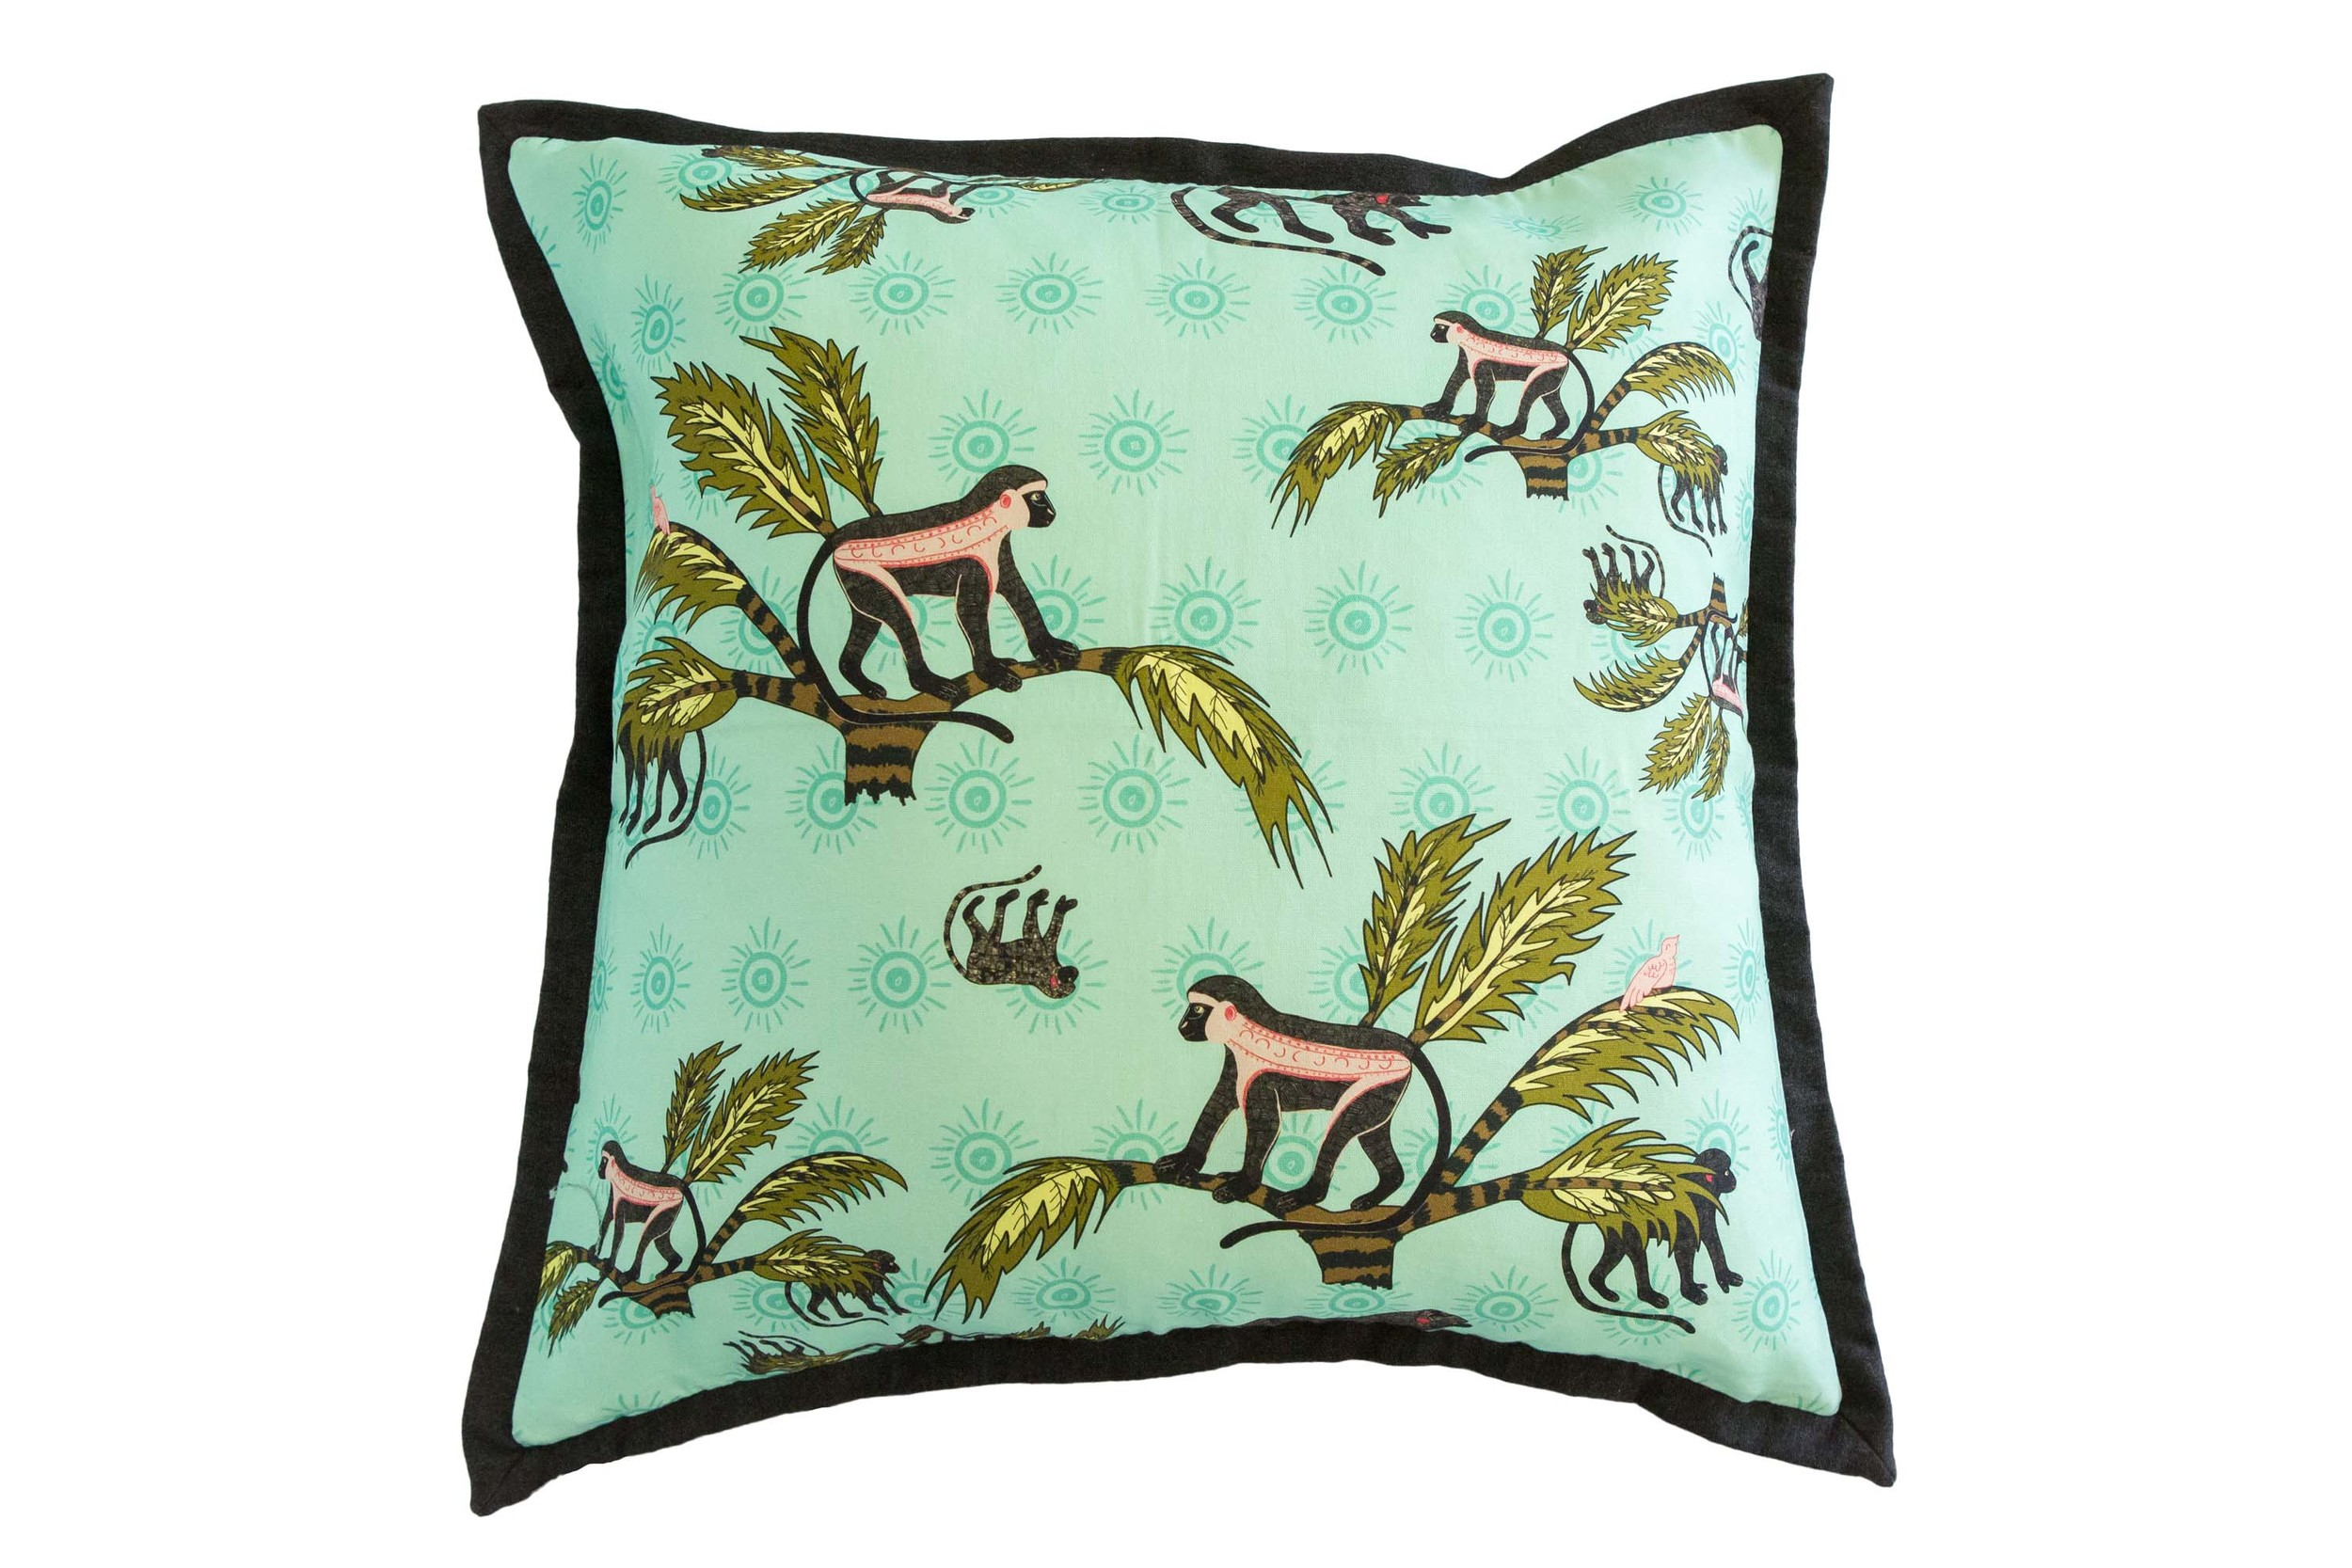 Monkey Palm Oasis  cushion by Halsted